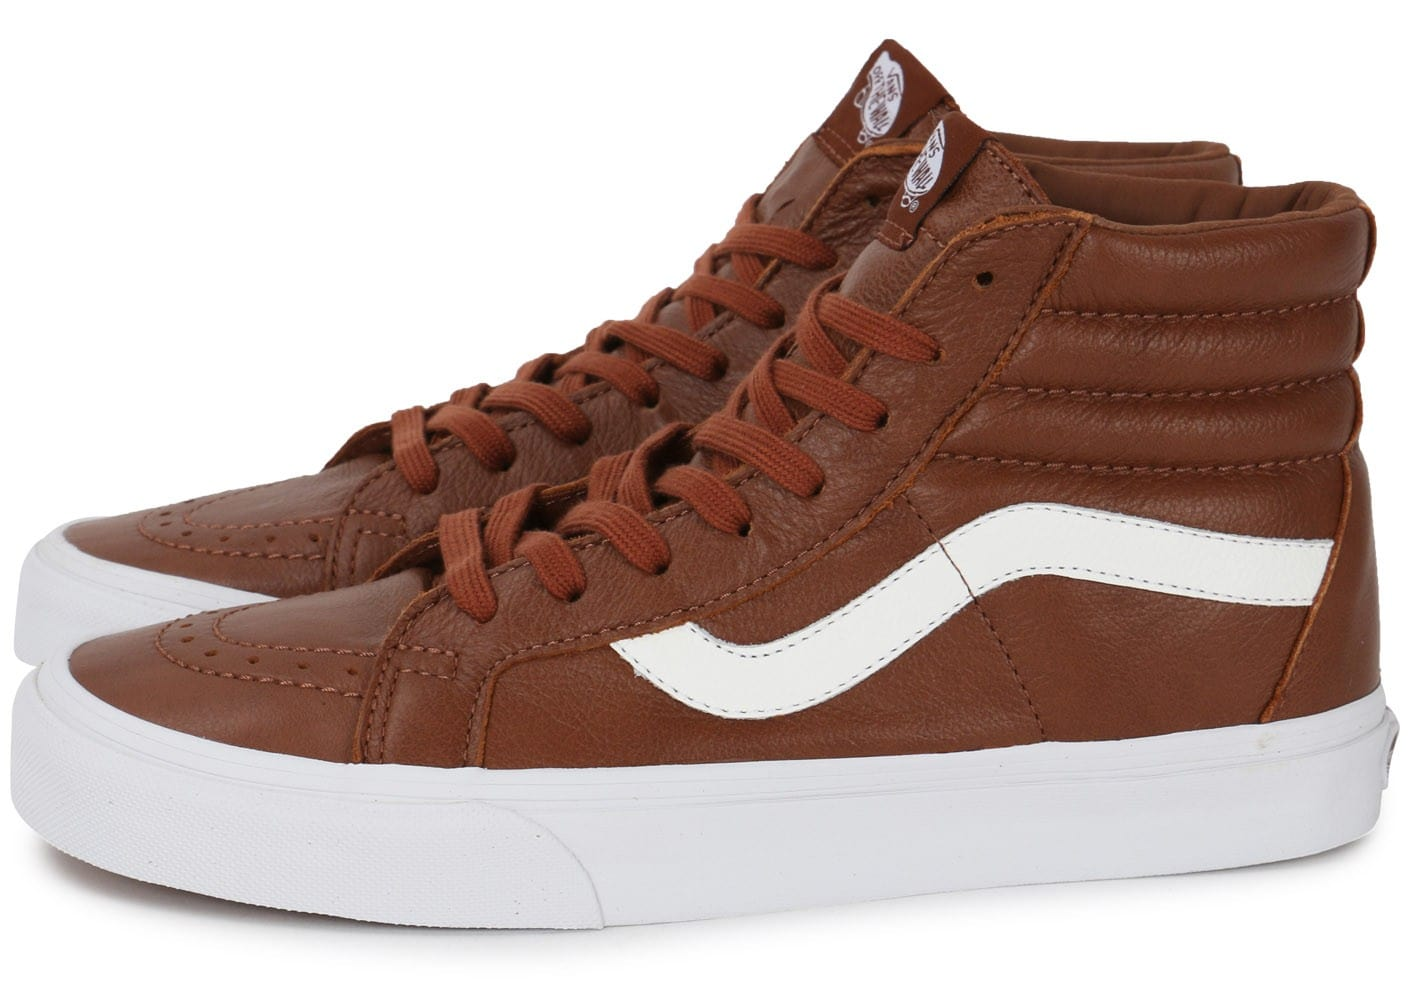 Vans SK8 HI Reissue marron Chaussures Baskets homme